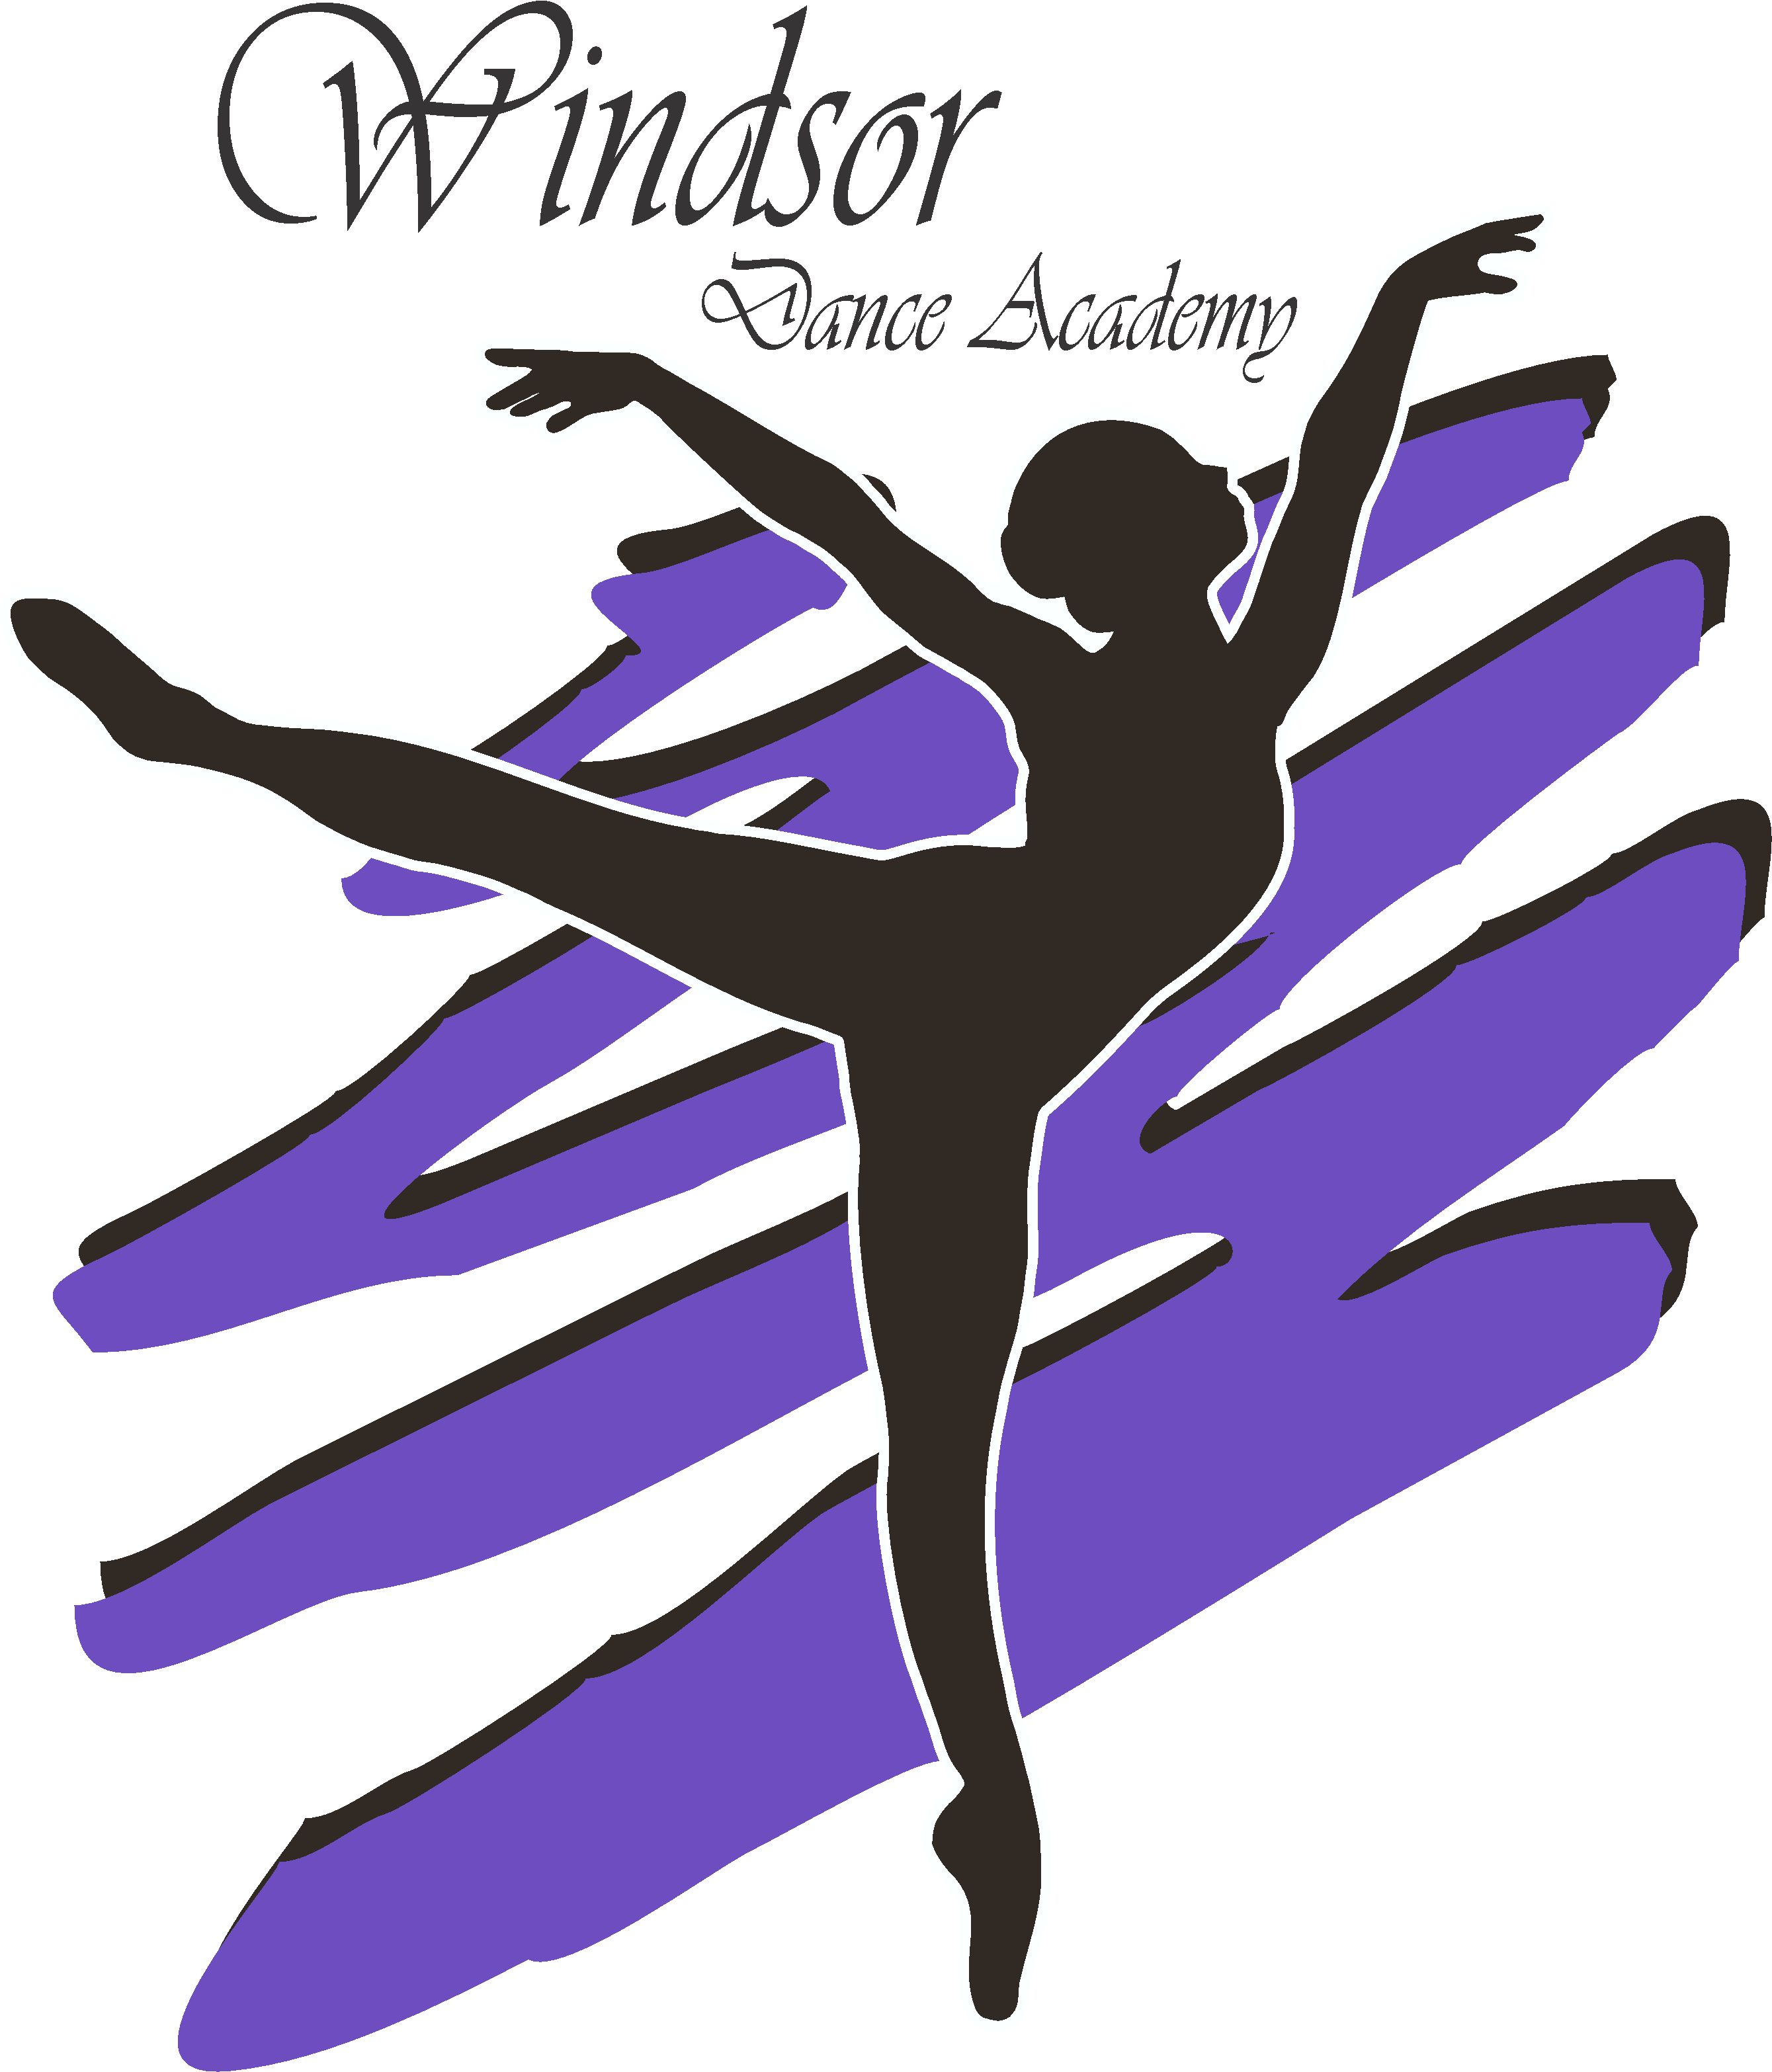 Windsor Dance Academy Logo